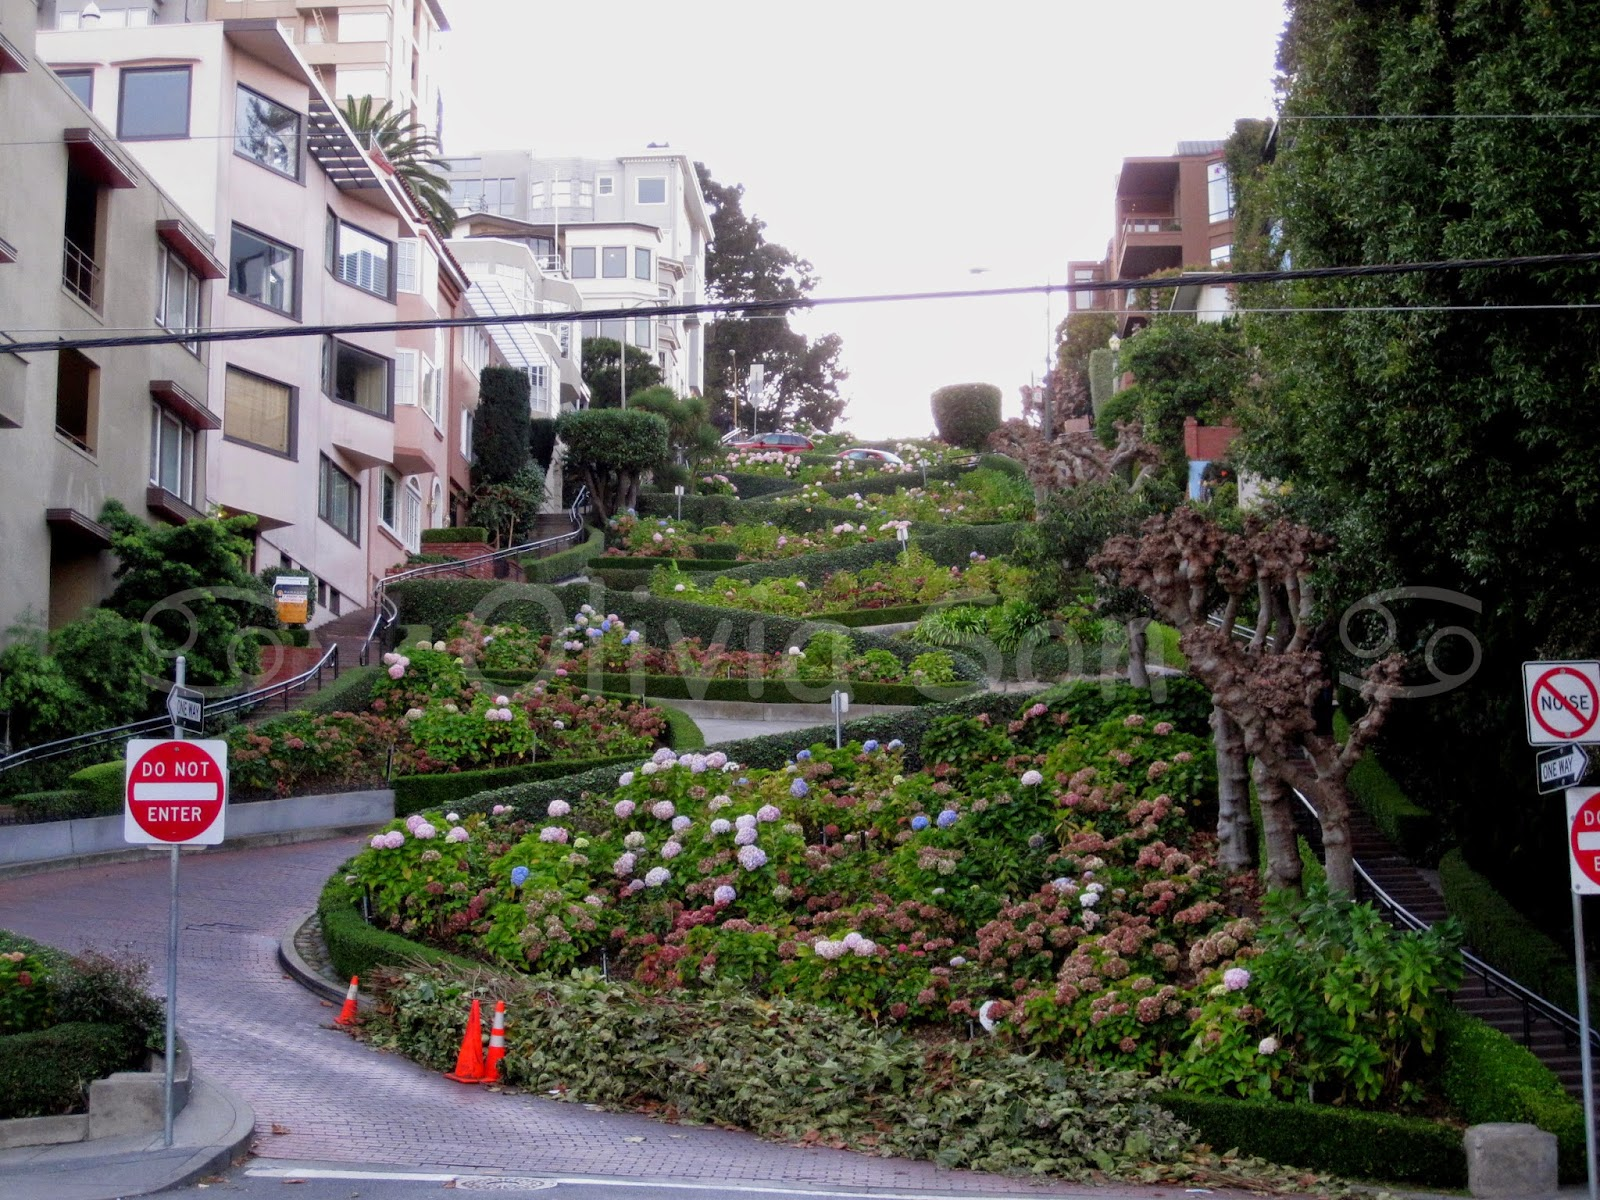 lombard street san francisco, californie, usa